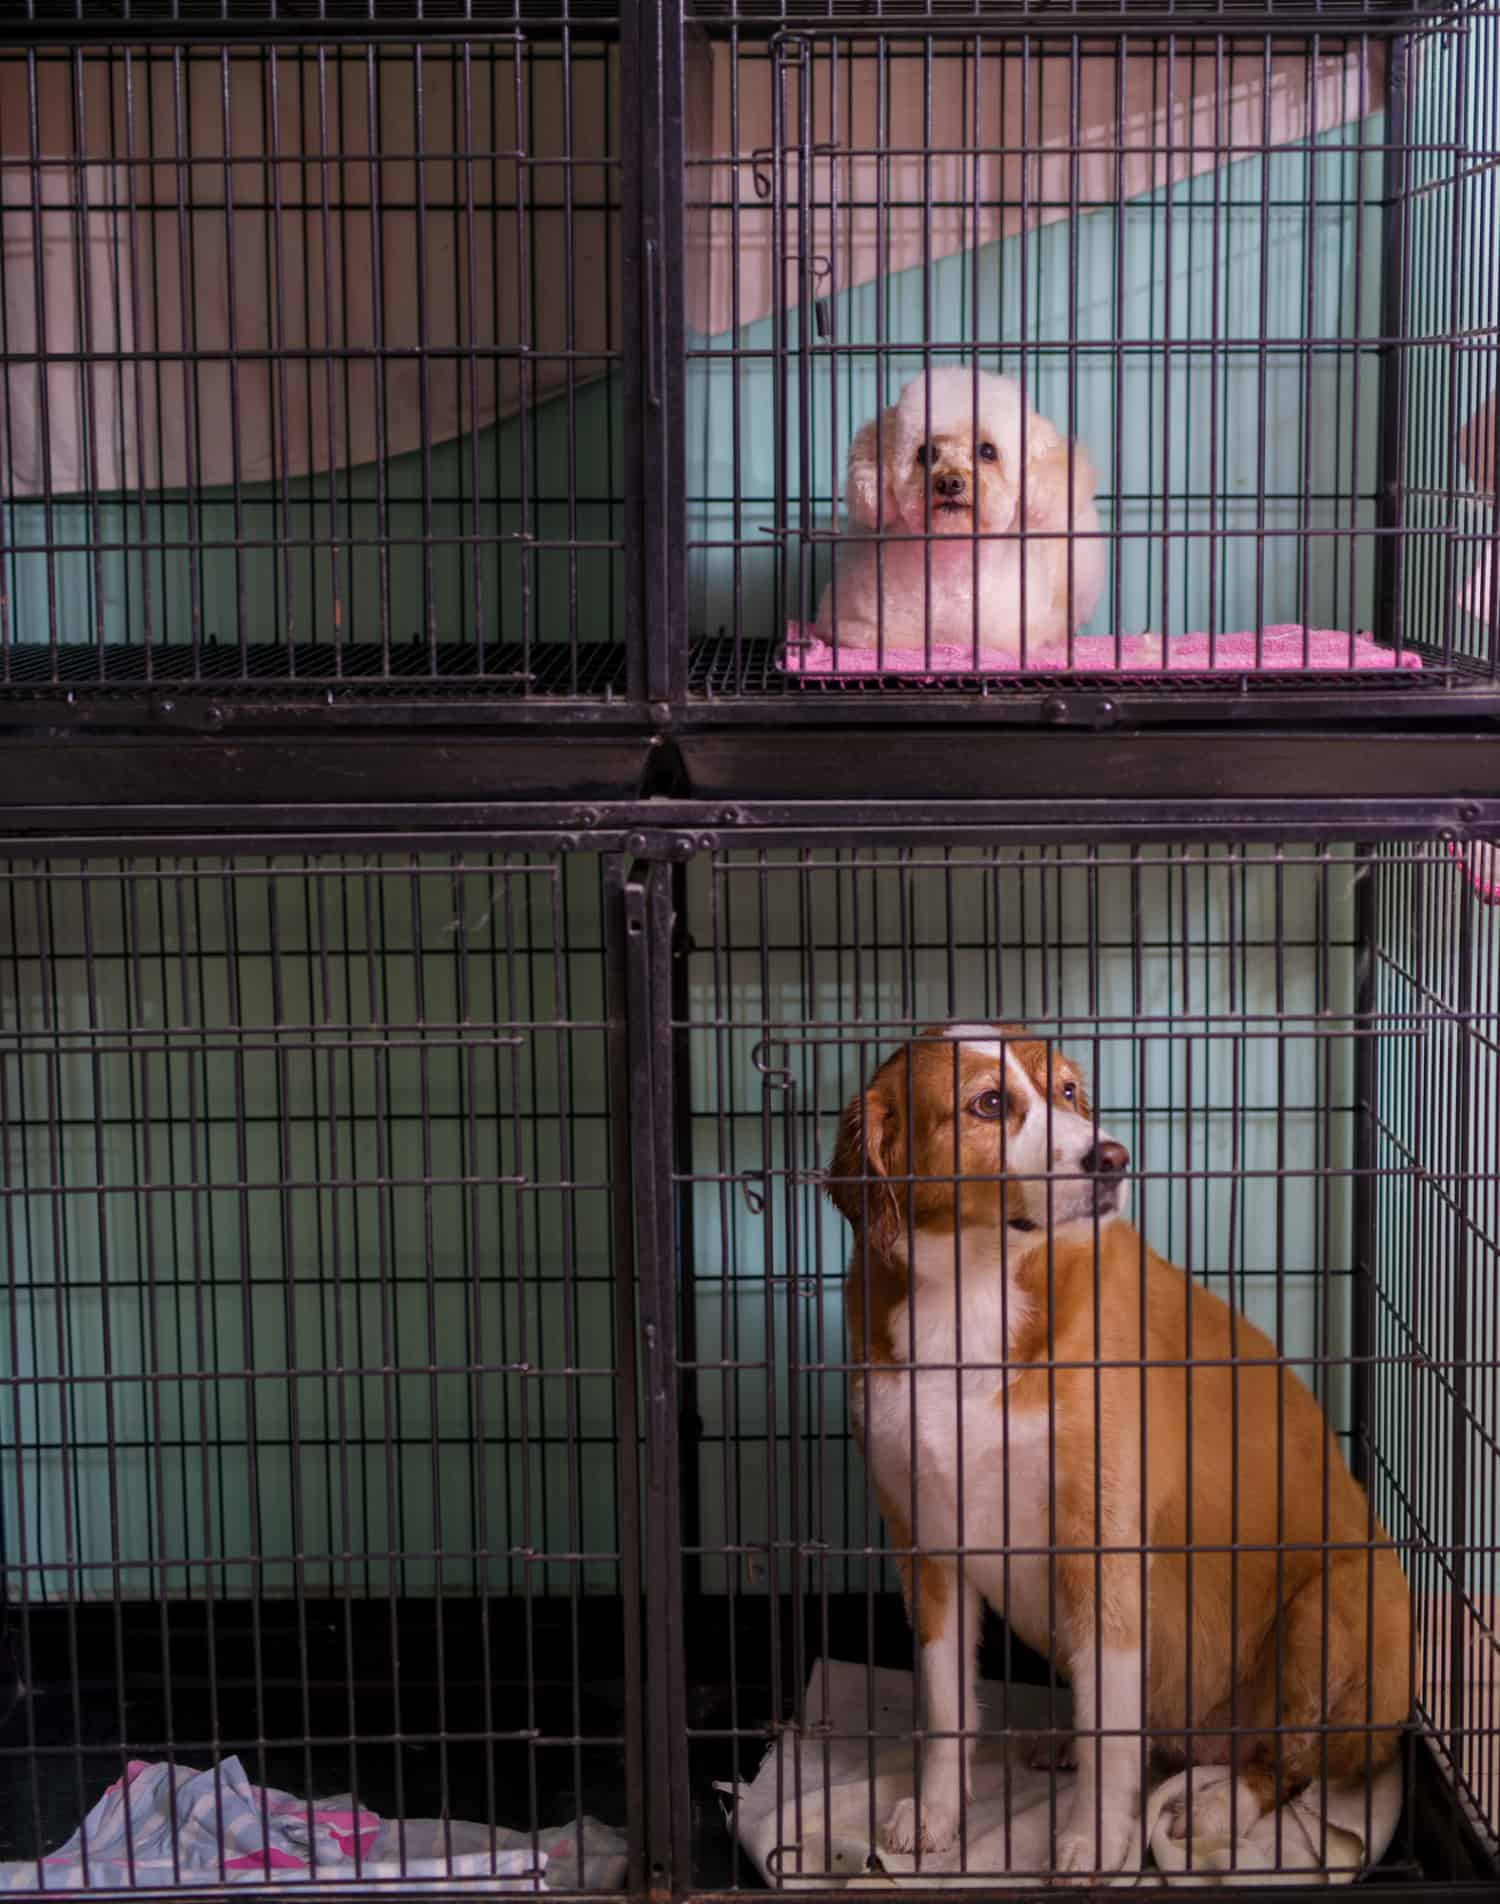 Sad small white and bigger white and brown dog sitting in cages stacked on each other